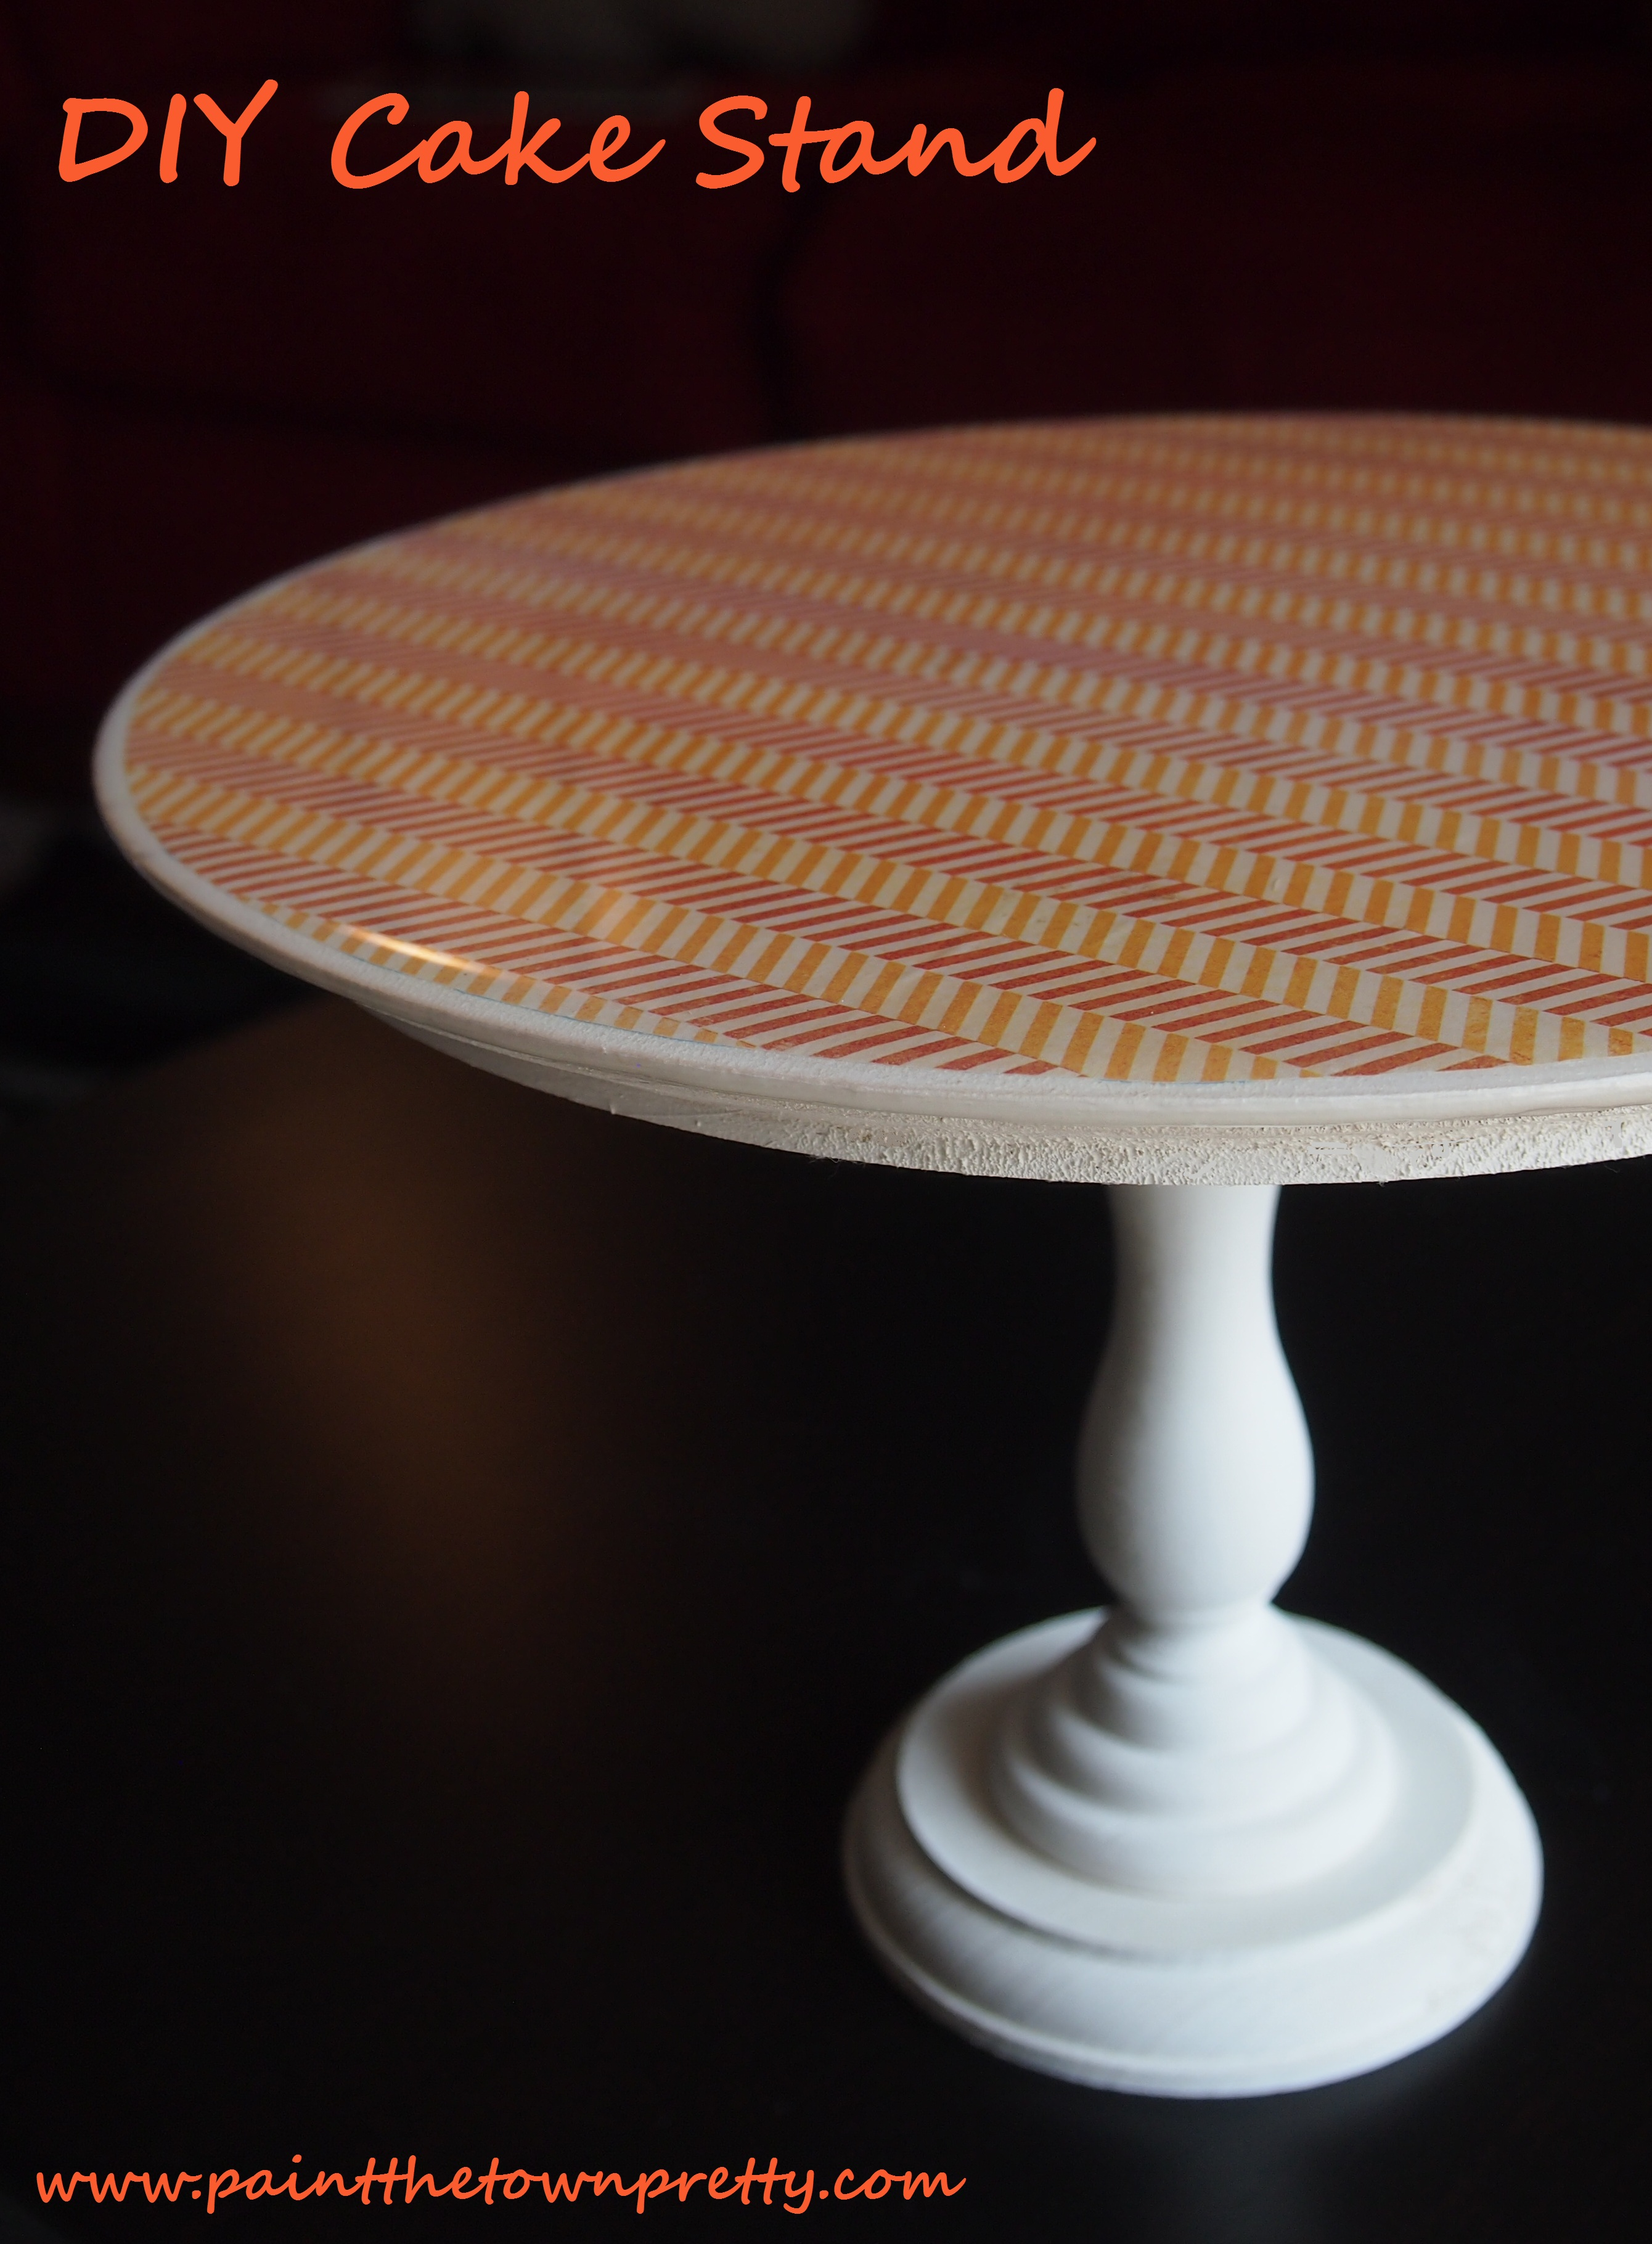 DIY Epoxy Cake Stands Paint The Town Pretty